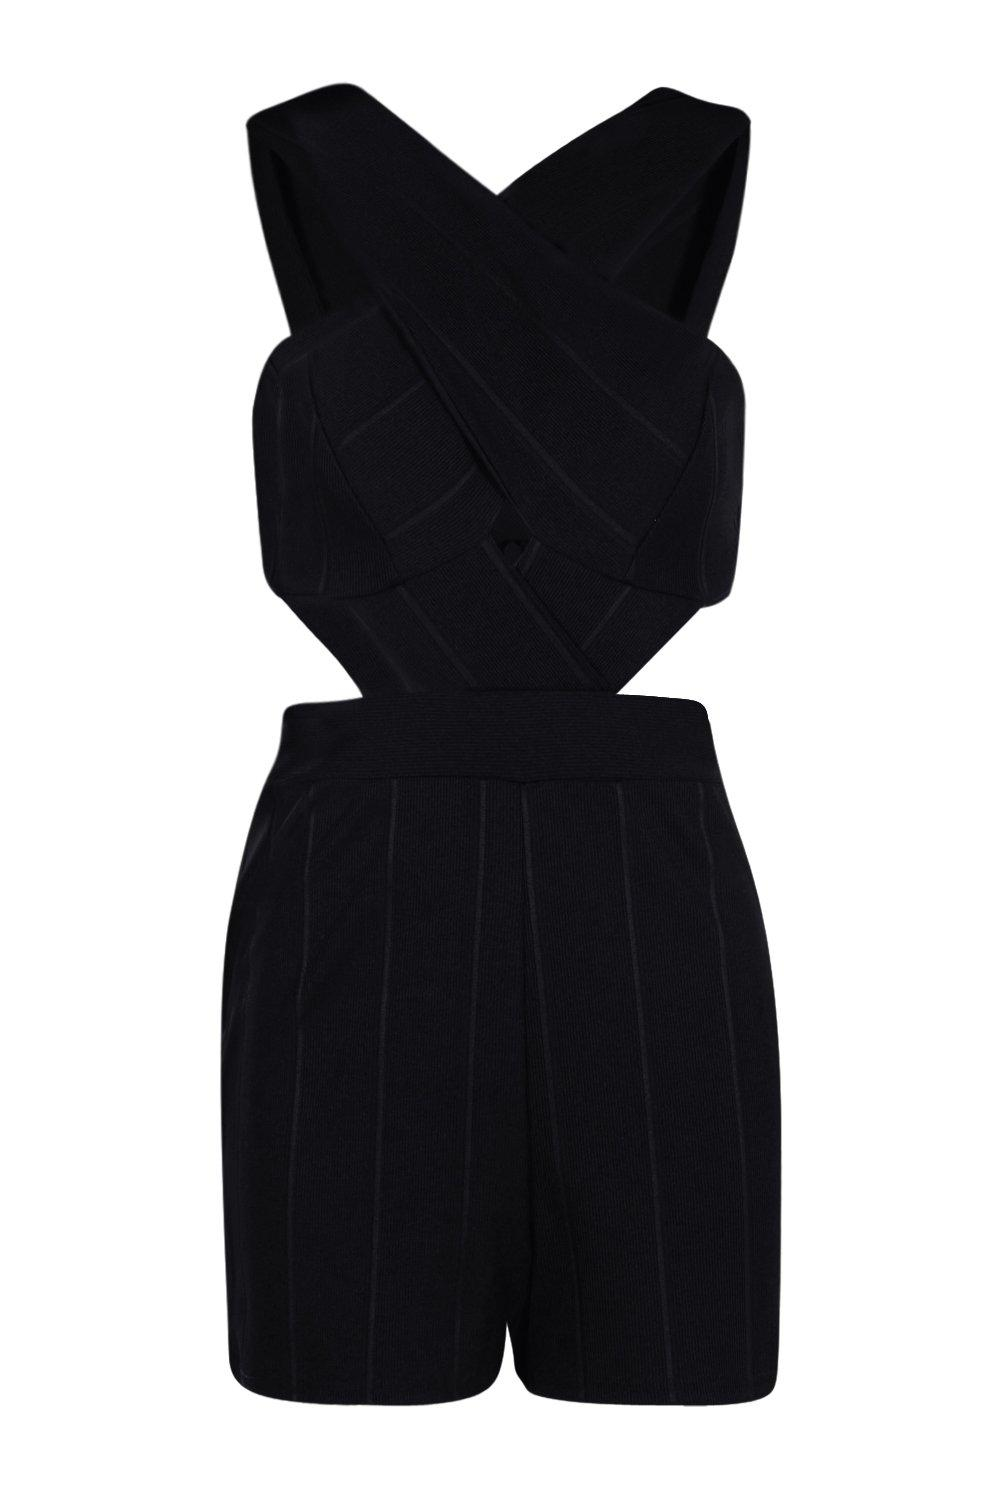 8a28669c01 Boohoo Jenny Cross Front Cut Out Side Bandage Playsuit in Black - Lyst